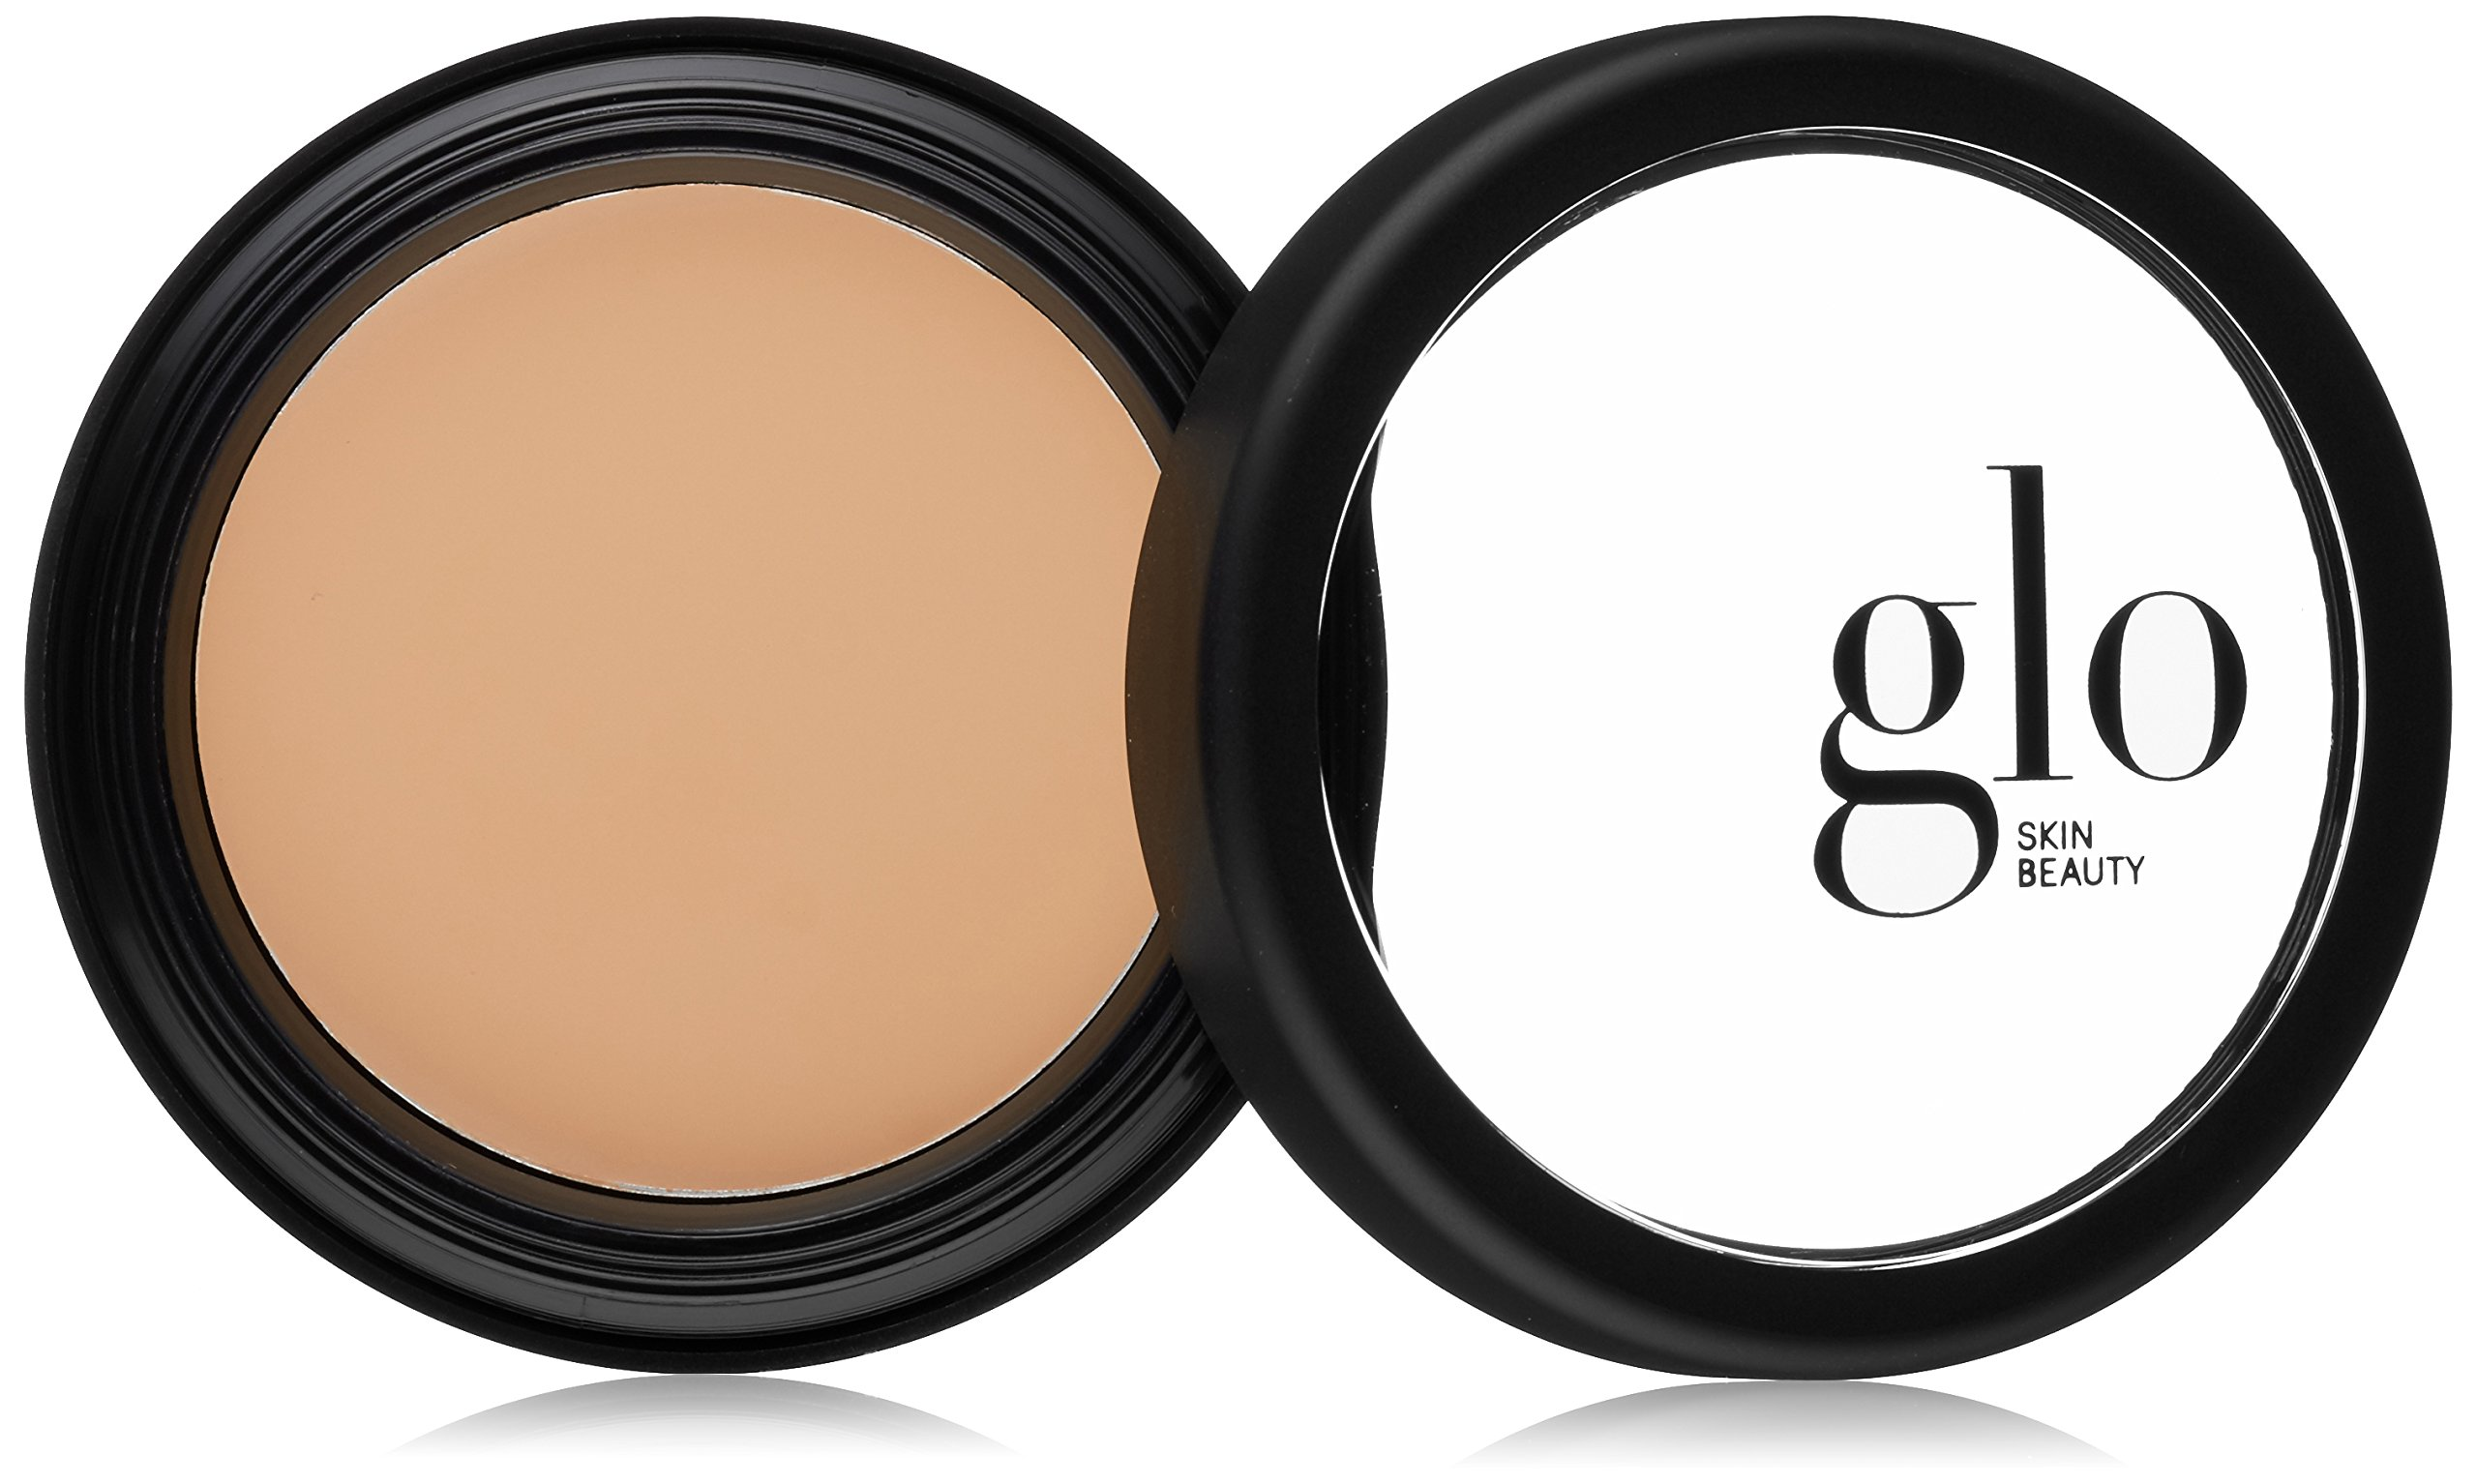 Glo Skin Beauty Oil Free Camouflage - Natural - Mineral Makeup Concealer, 0.11 oz, 4 Shades | Cruelty Free